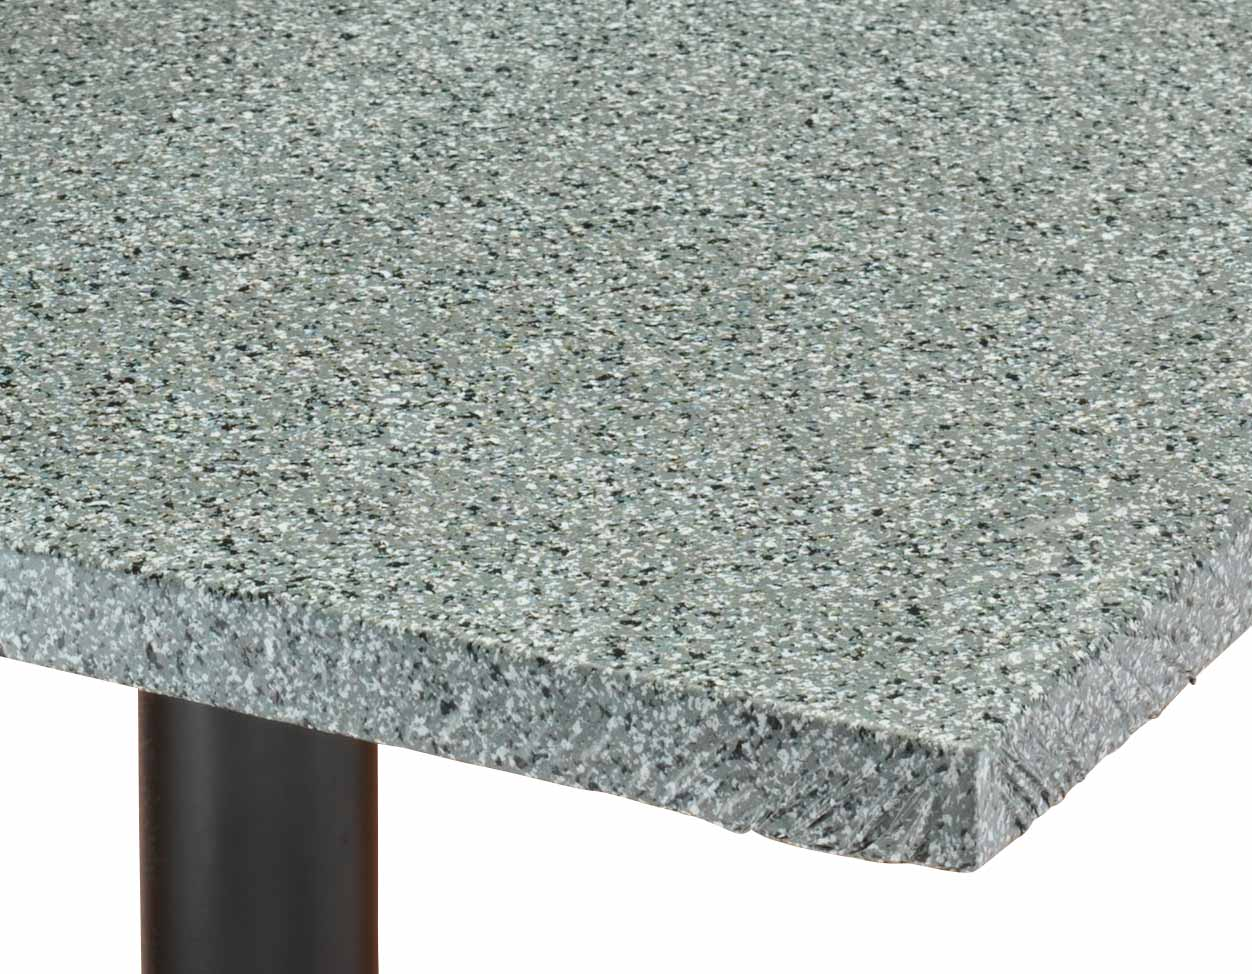 Granite Vinyl Elasticized Banquet Table Cover 36 Quot Square